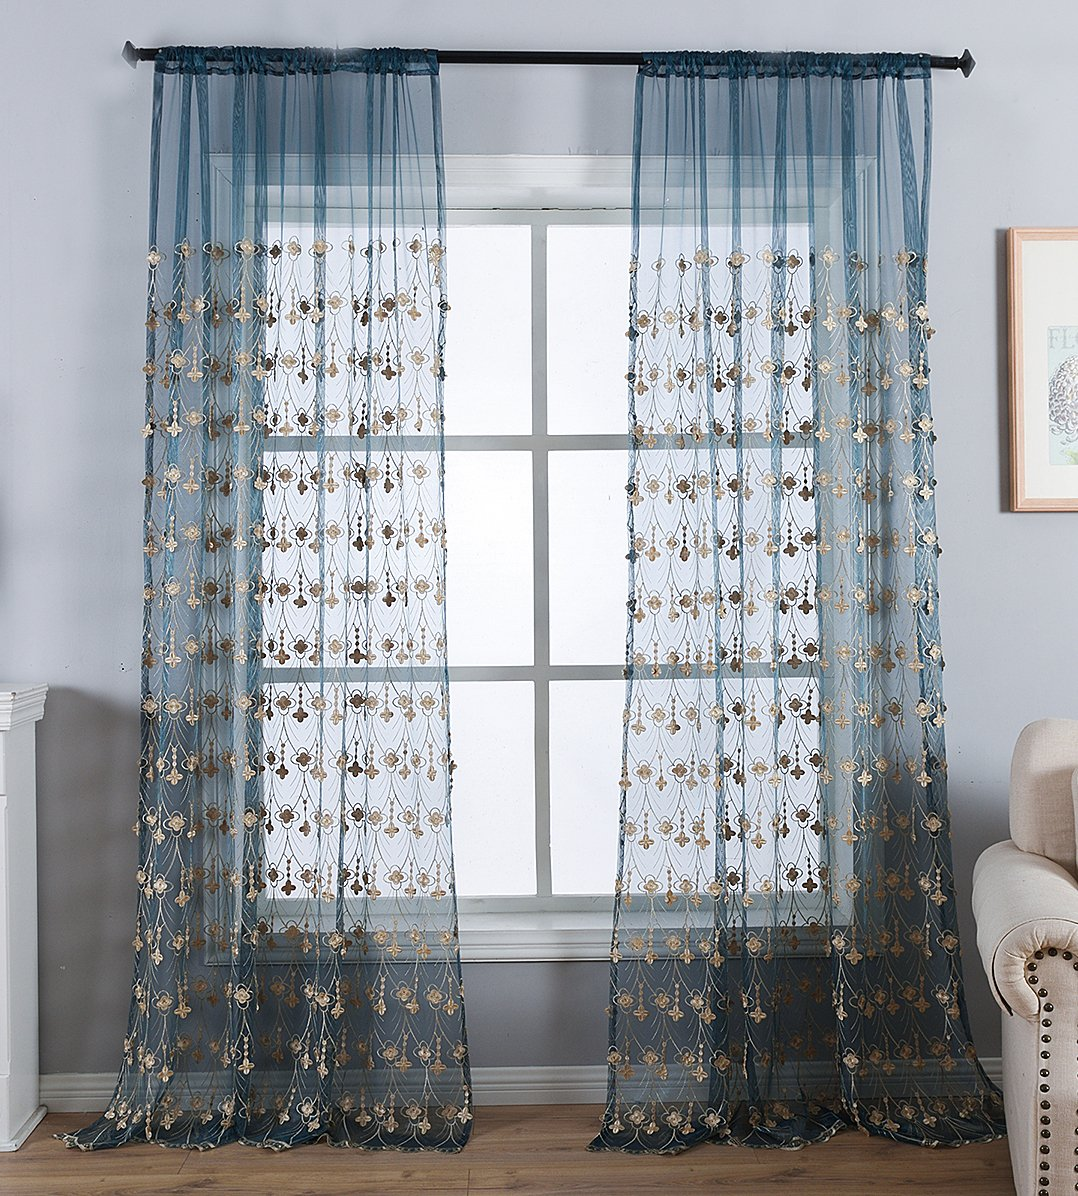 ASide BSide Classic Europern Style Sheer Curtains Retro Pattern Embroidered Rod Pocket top Voile Panel for Bedroom Kids Room 1280530C1PYFBU15263-8505-YH 2 Panels, W 52 x L 84 inch, Blue